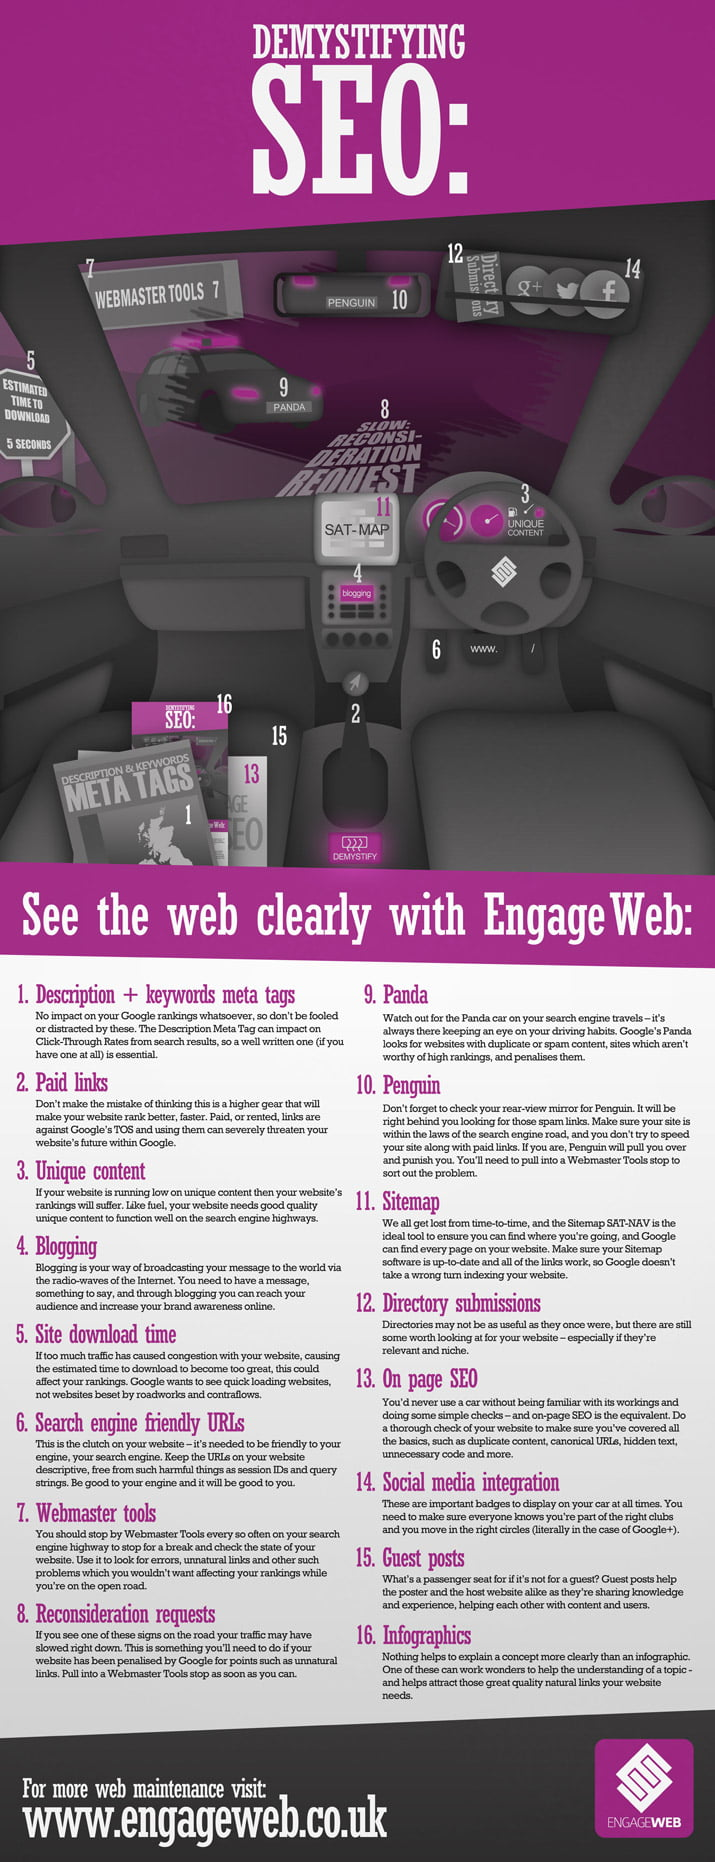 Engage Web's Demystifying SEO Infographic